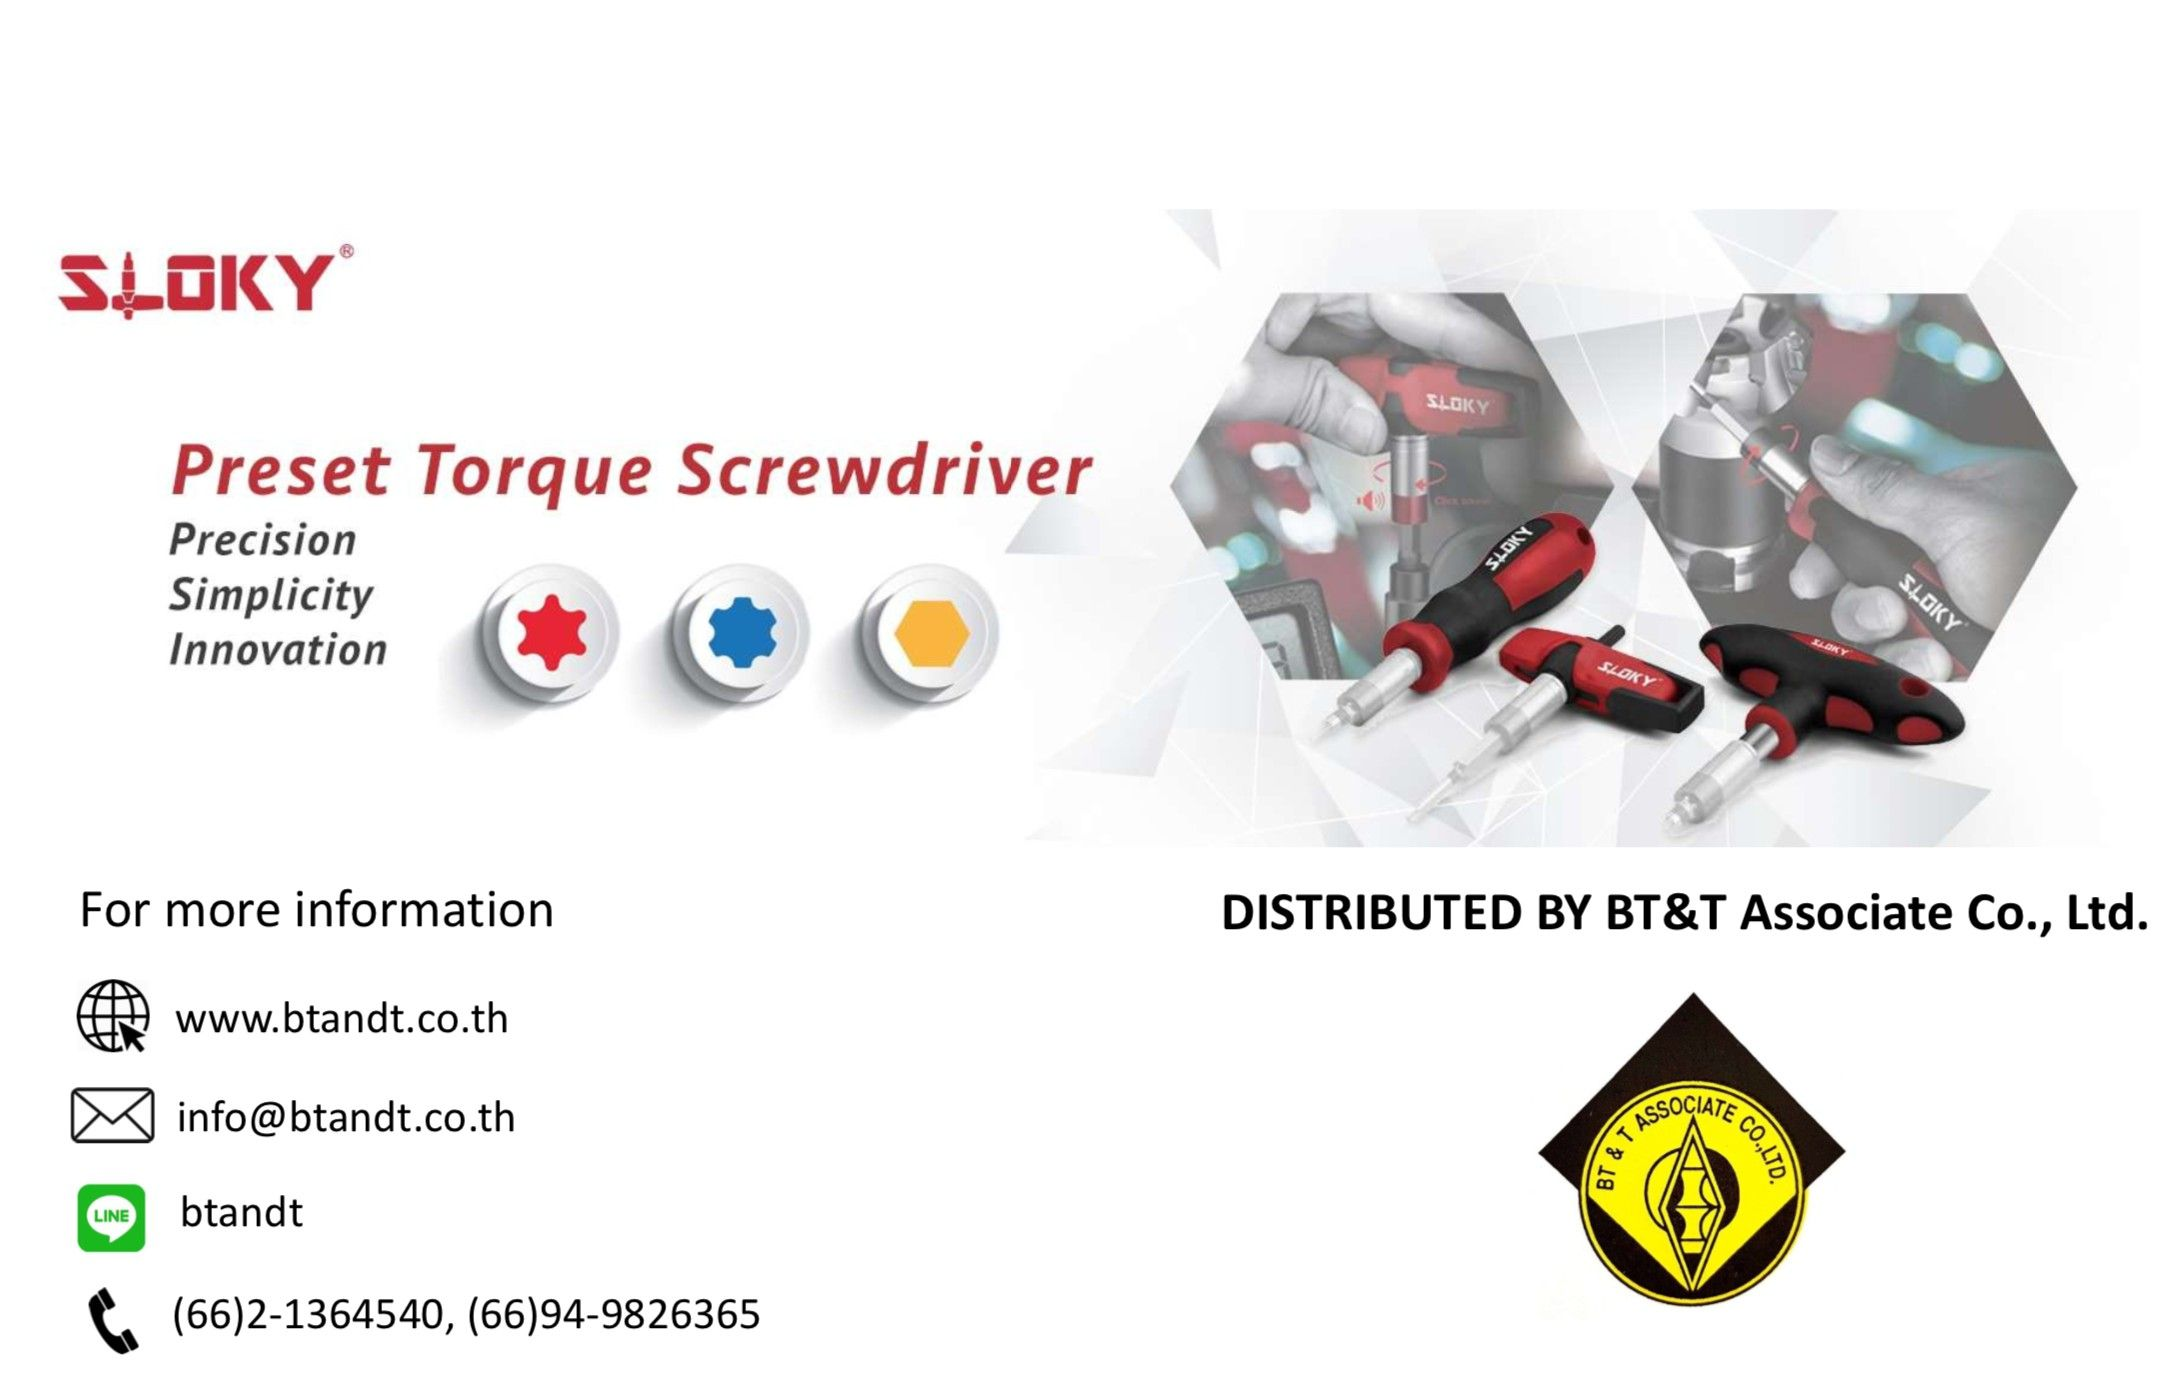 Sloky torque screwdriver promoted by BT&T in Thailand; originally designed for CNC cutting tools of precision machining and milling.